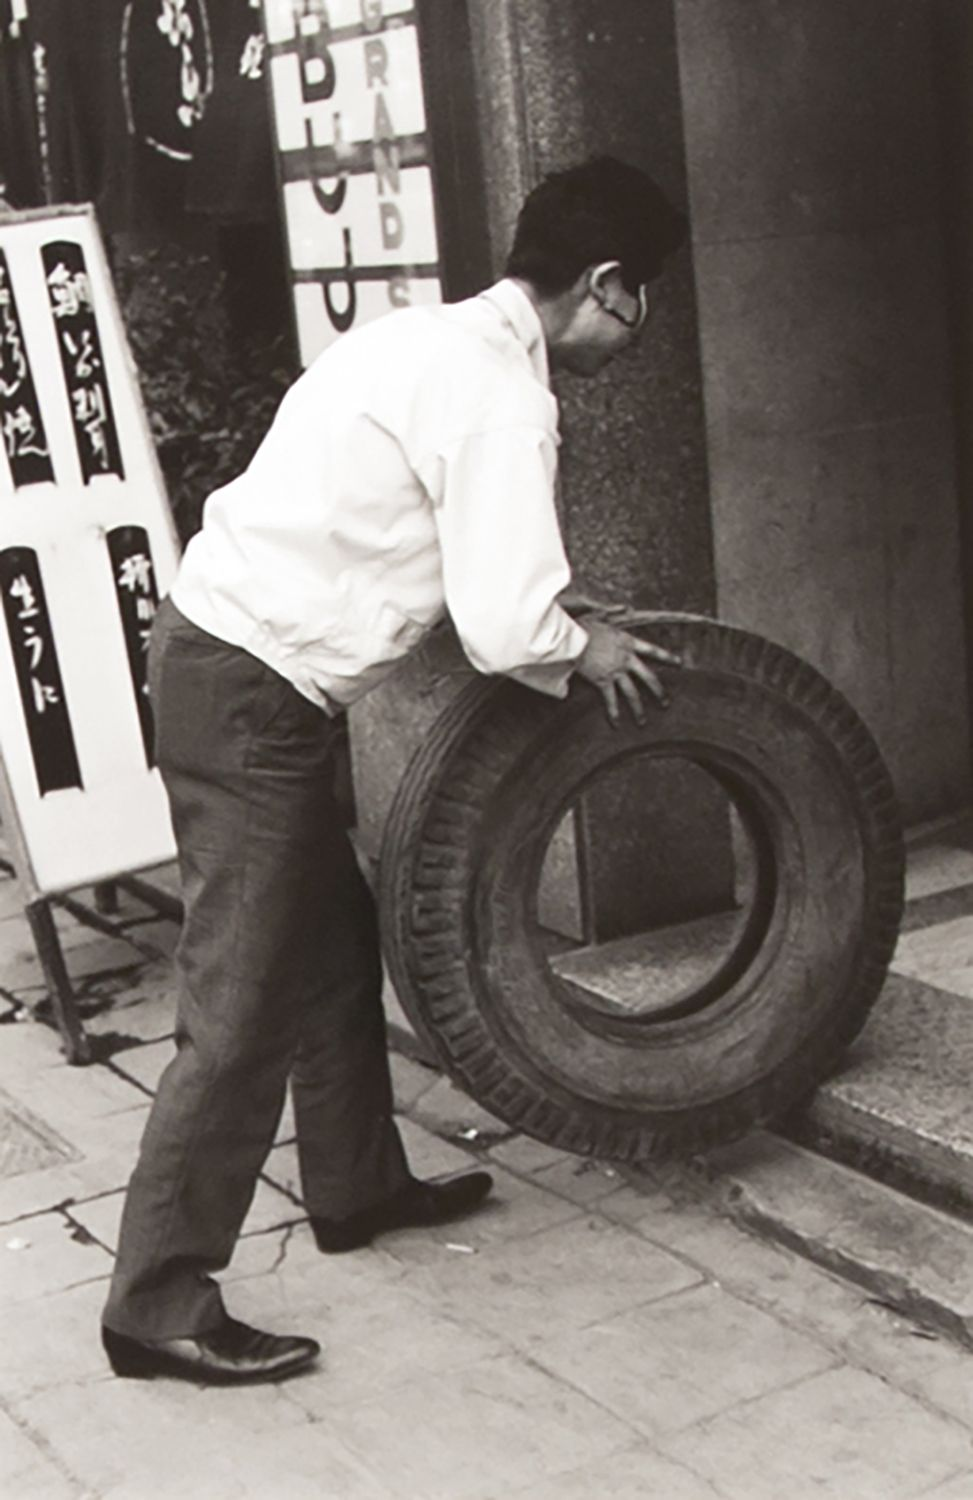 Jiro Takamatsu's performance with with a tire in The 6th Mixer Plan., 1963